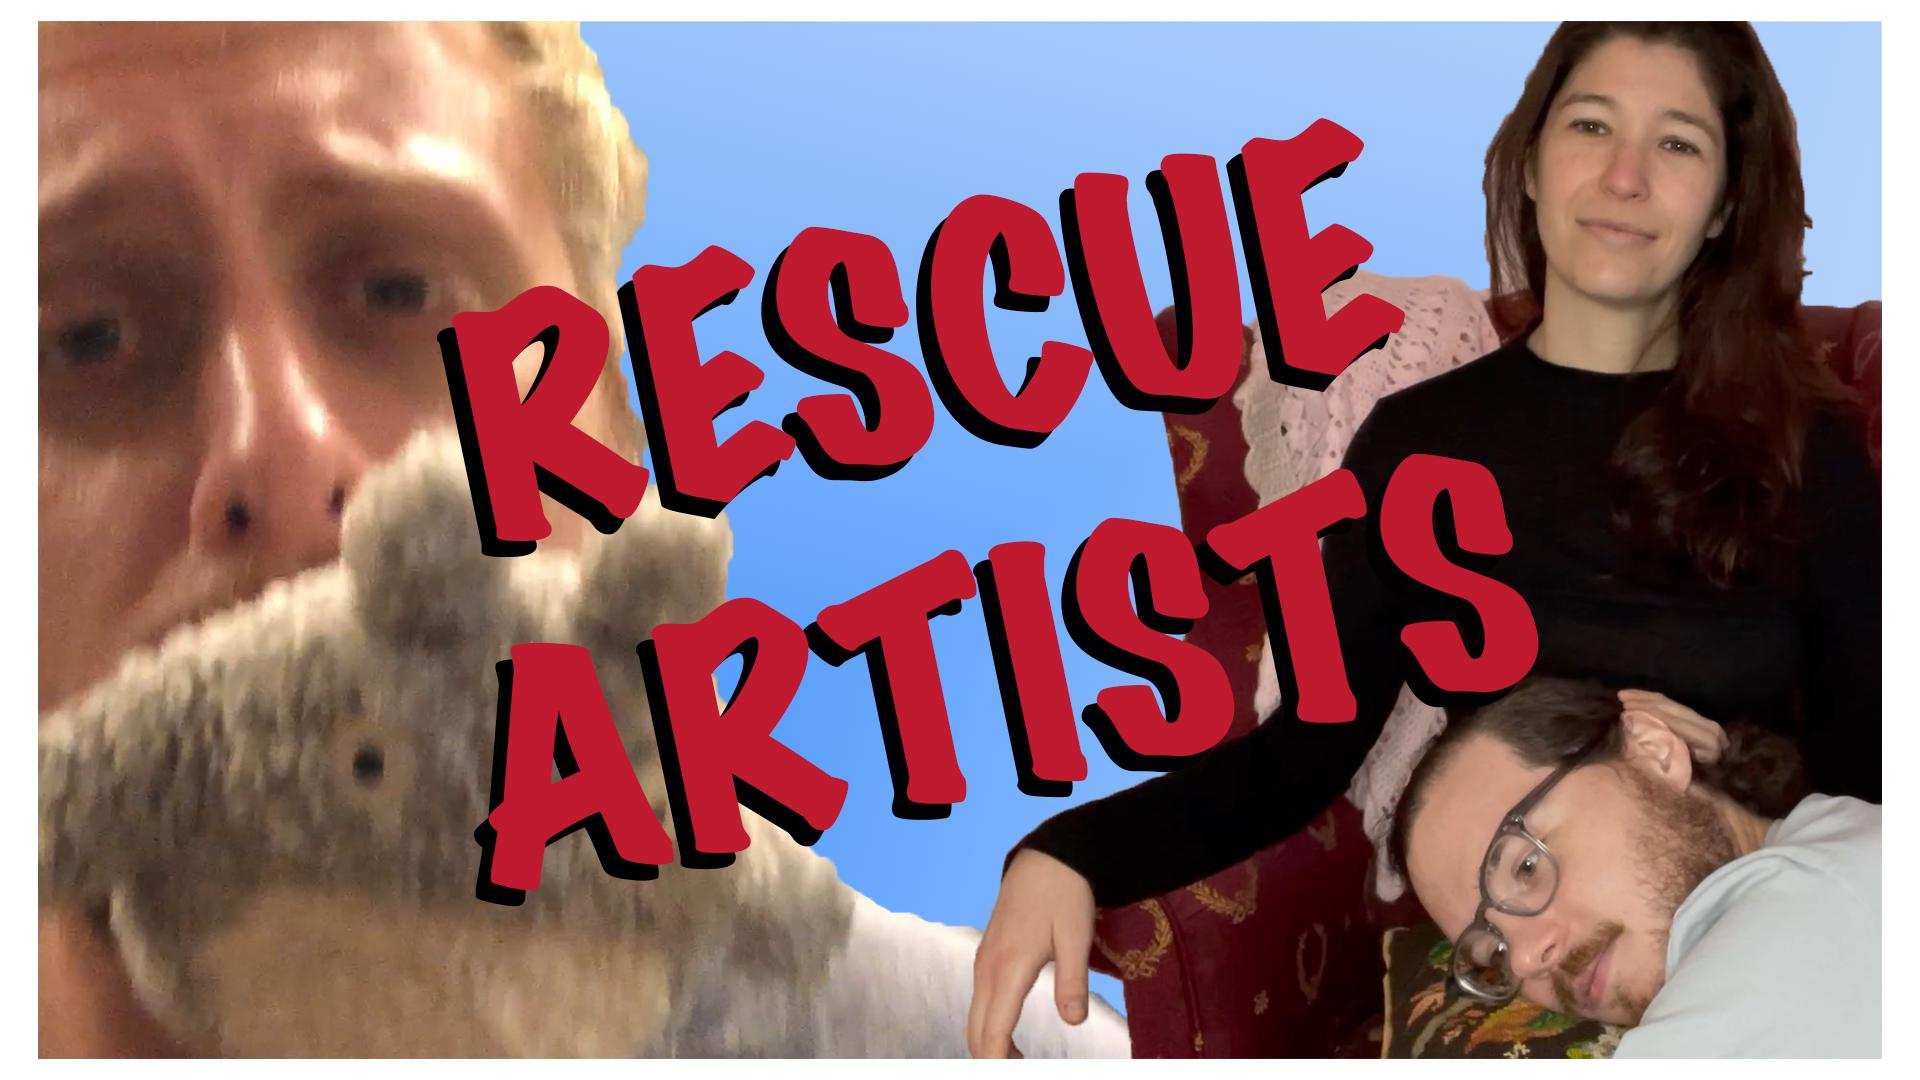 Rescue Artists